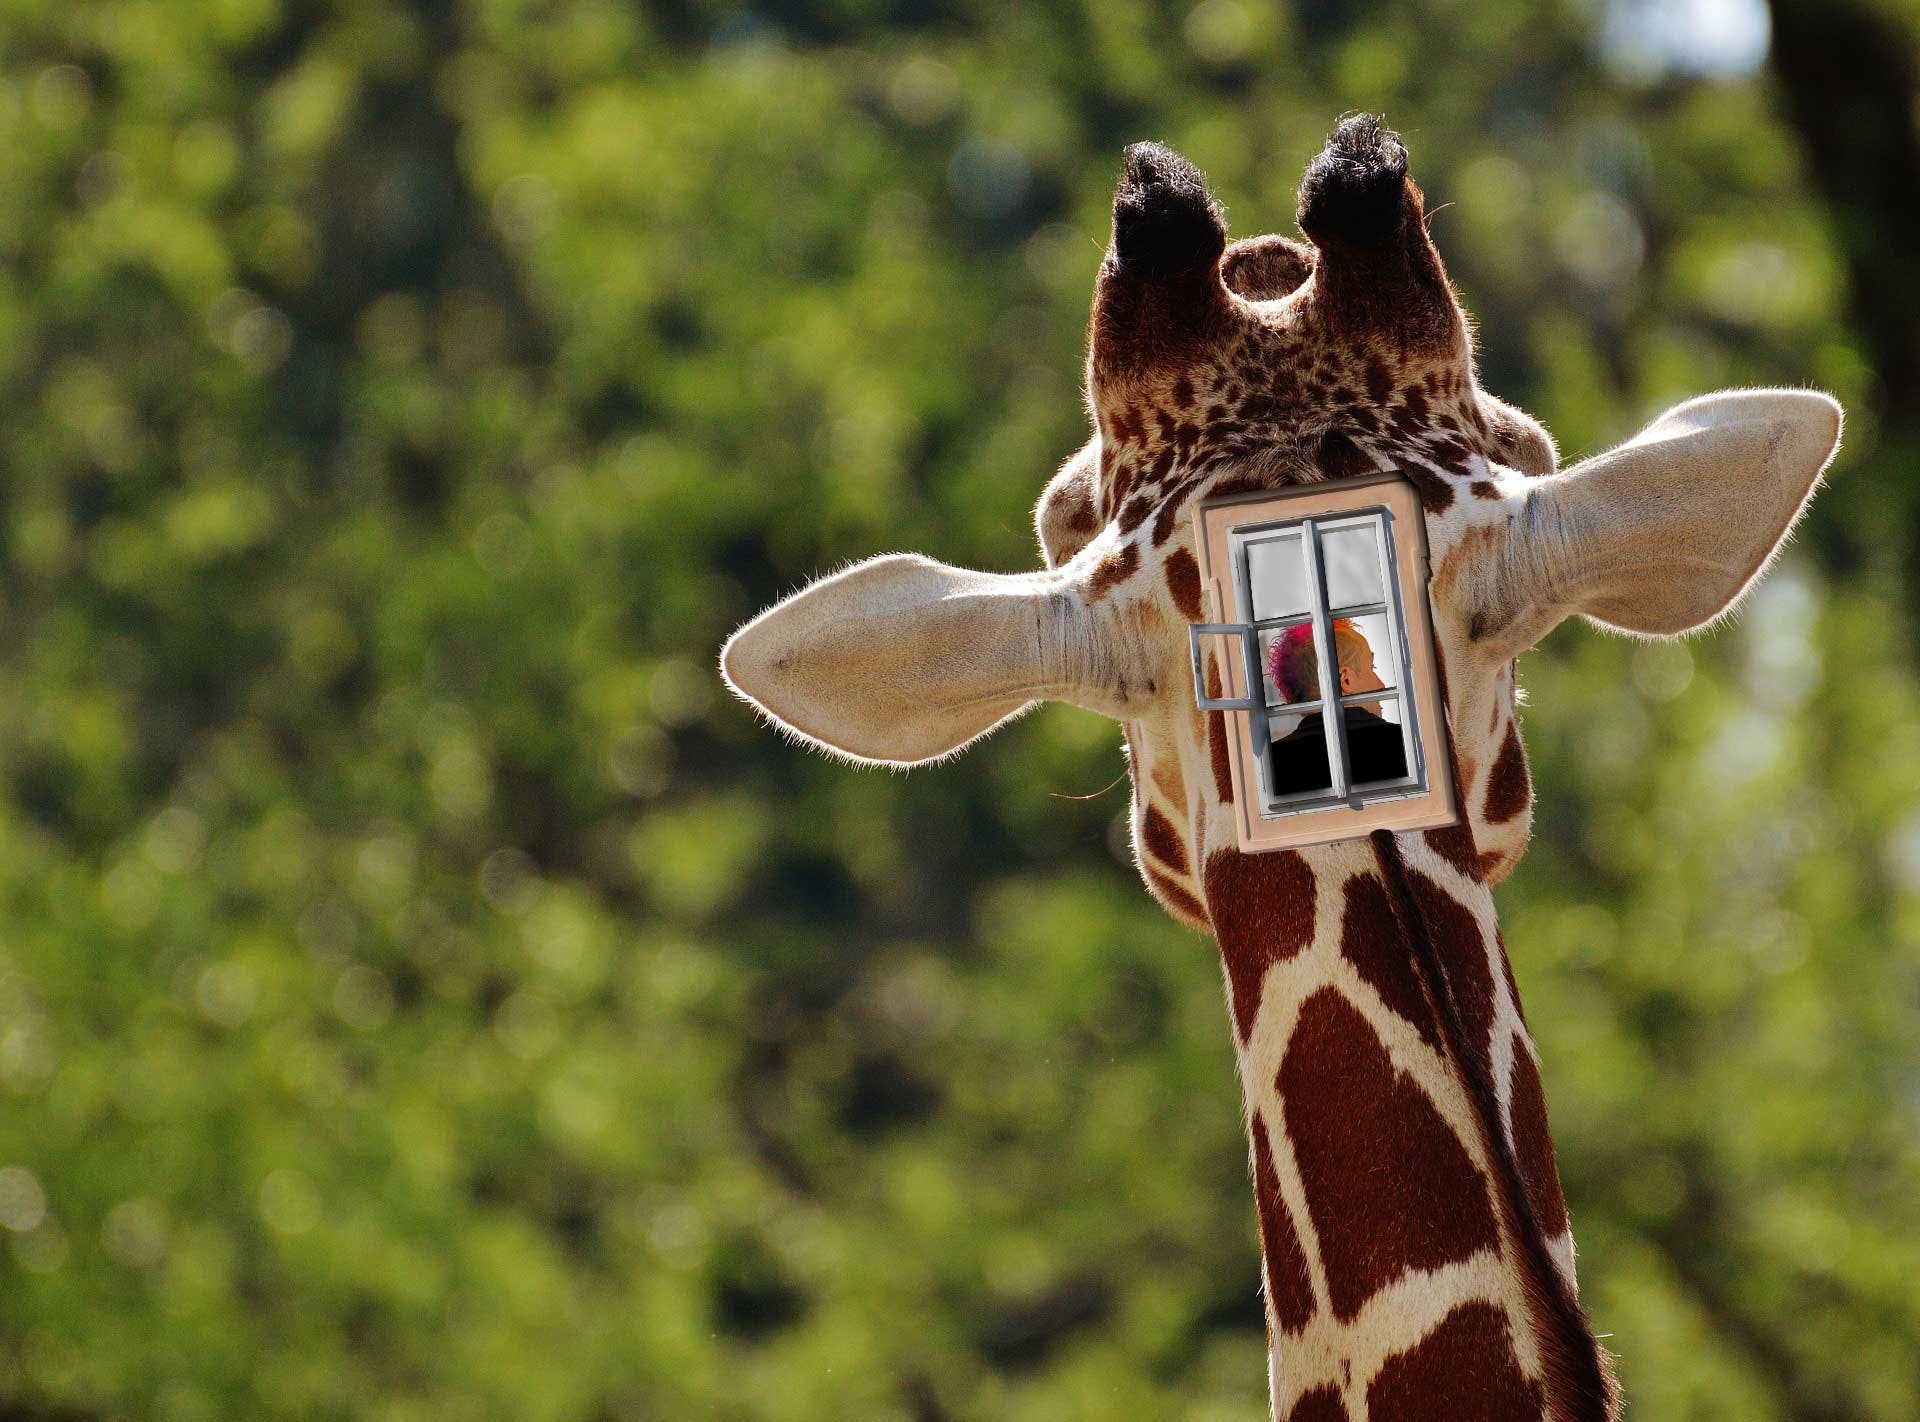 A giraffe being driven from within